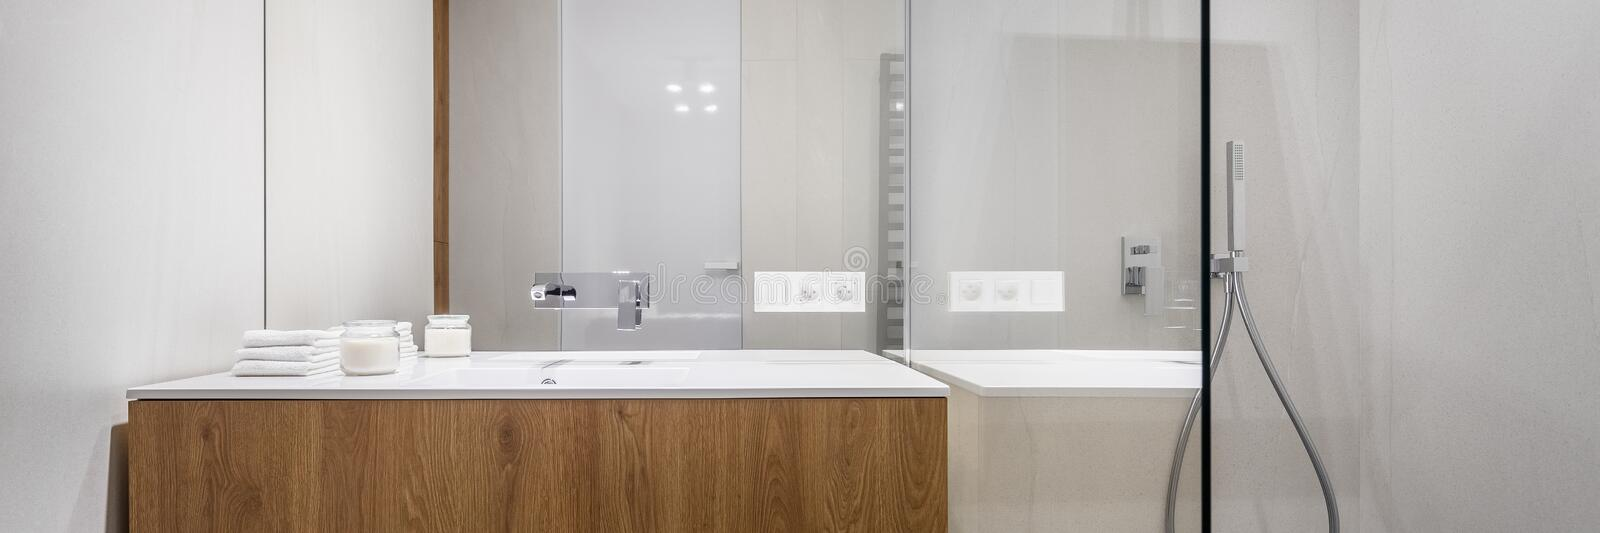 Bathroom with shower, panorama. Panorama of bathroom with shower, big mirror and wooden basin cabinet stock images